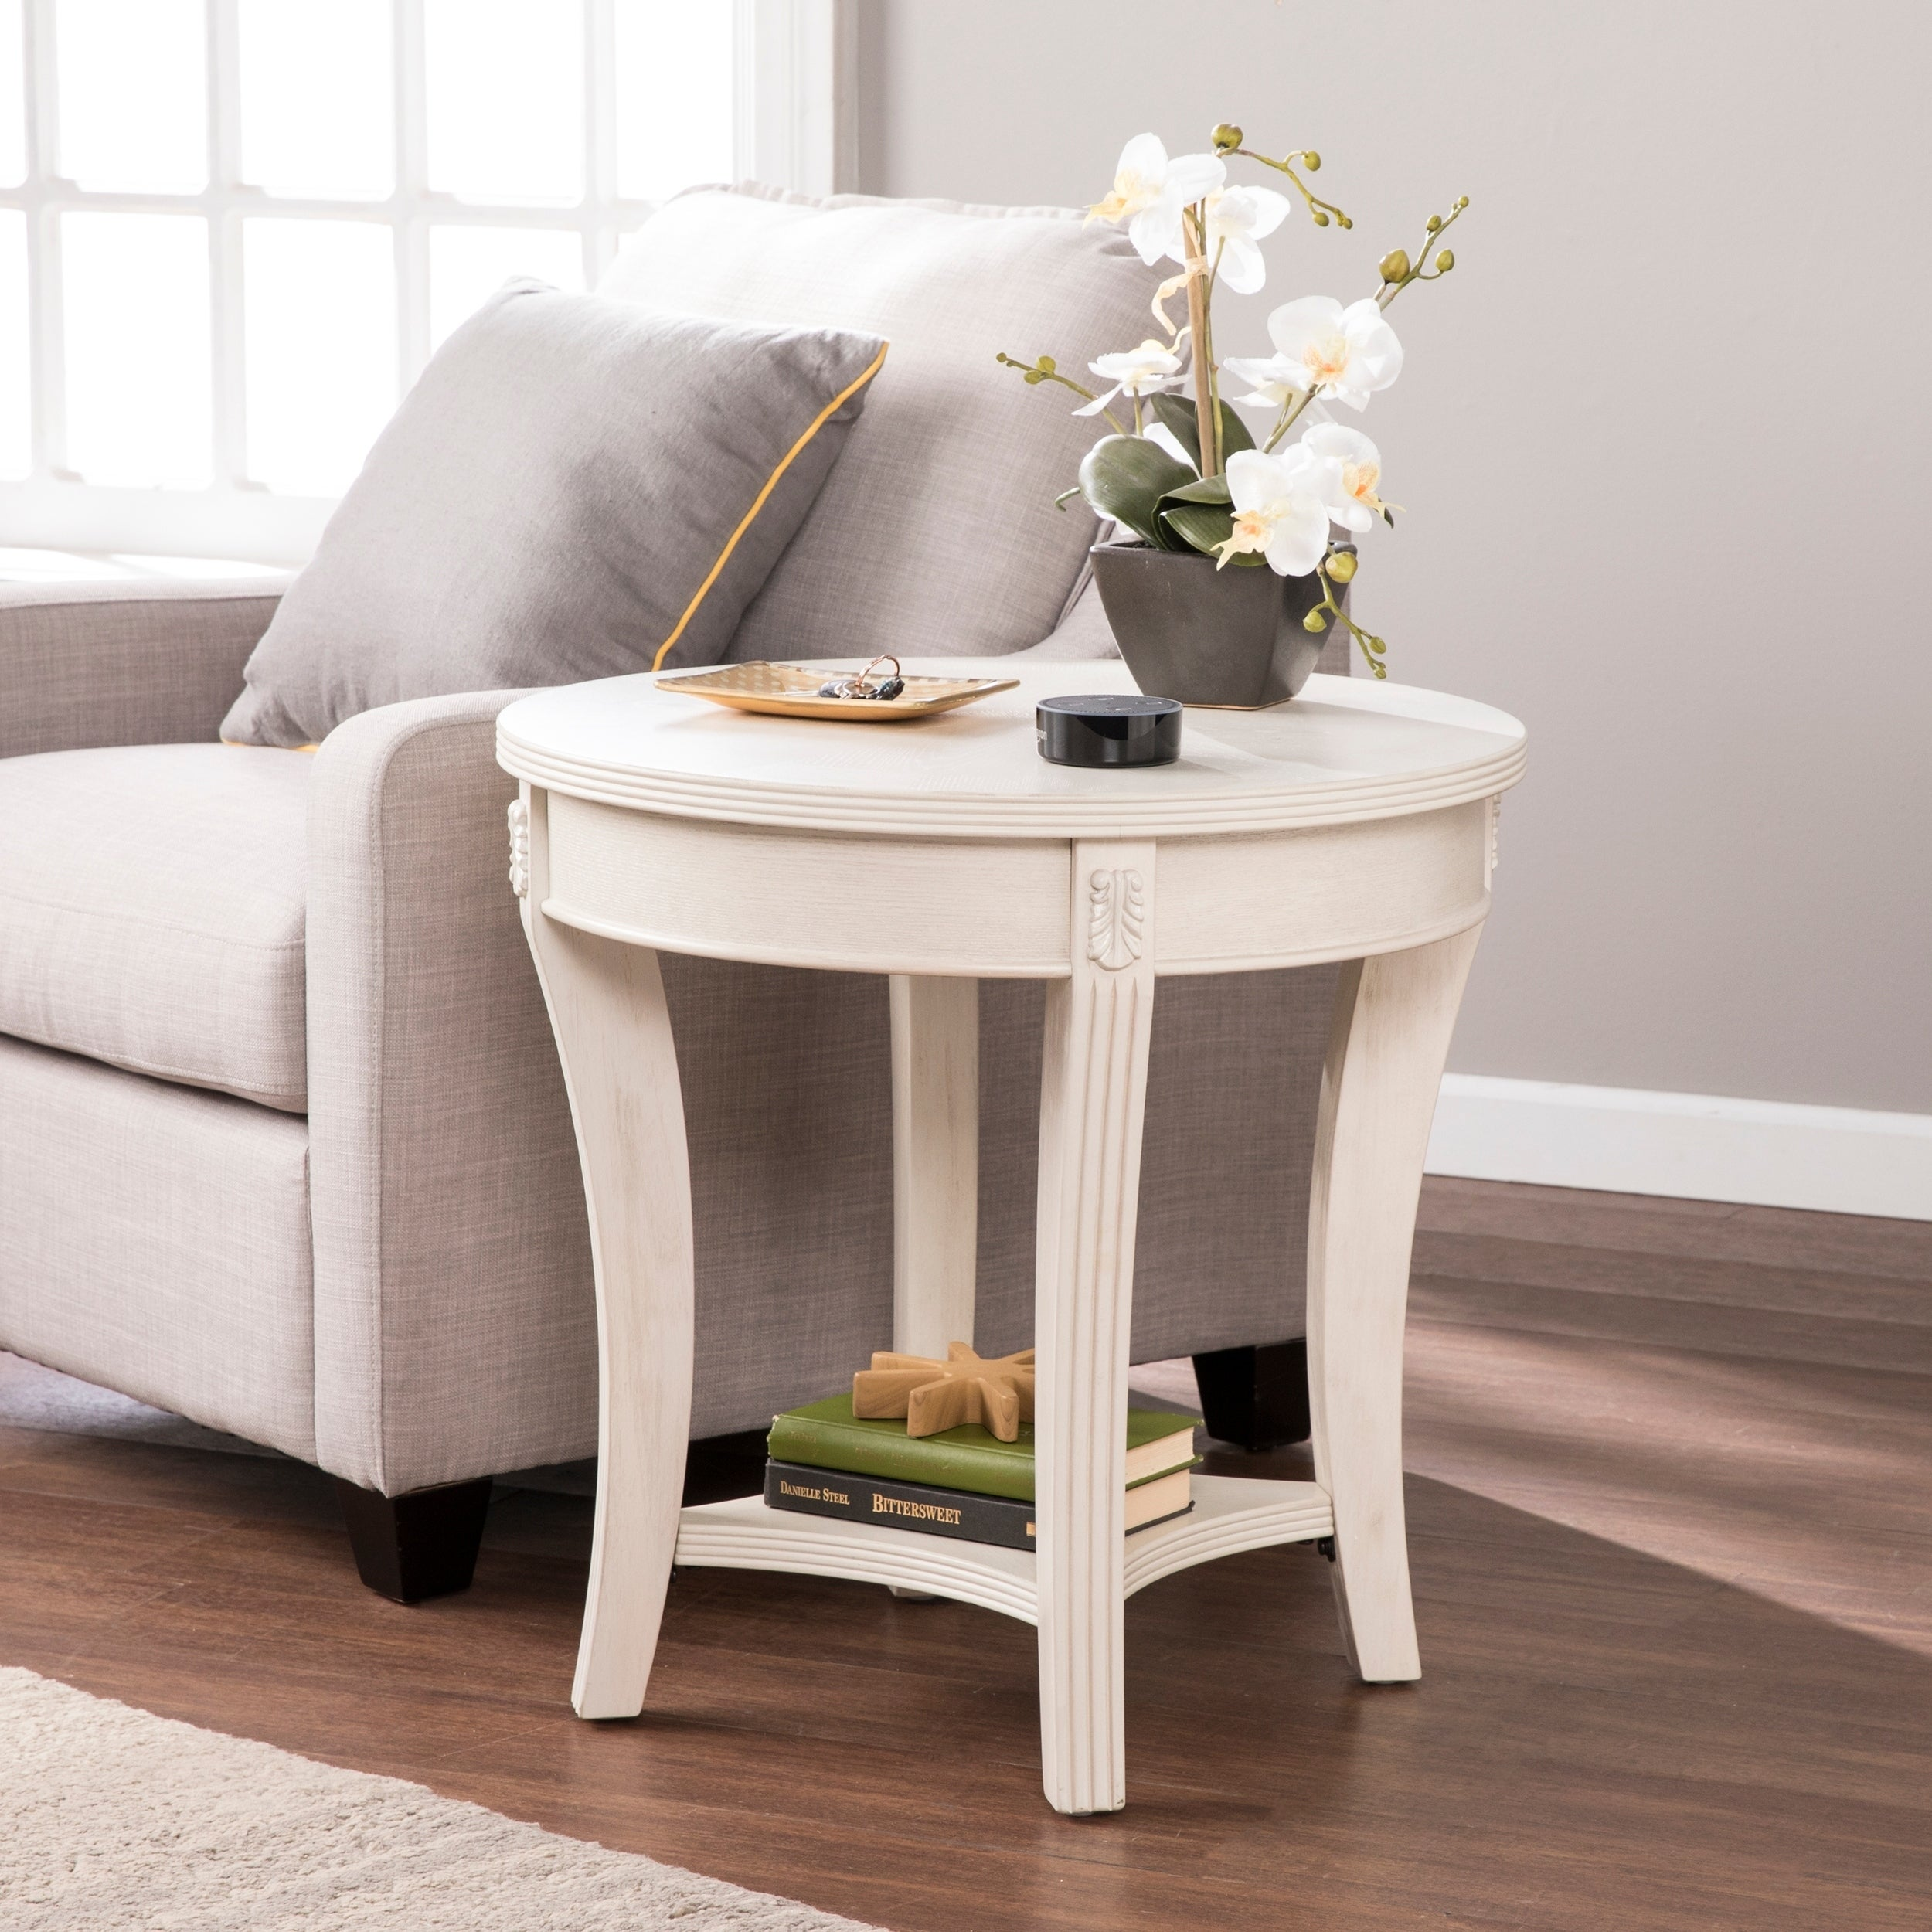 Shop gracewood hollow camaj traditional round end table whitewash free shipping on orders over 45 overstock com 18157314